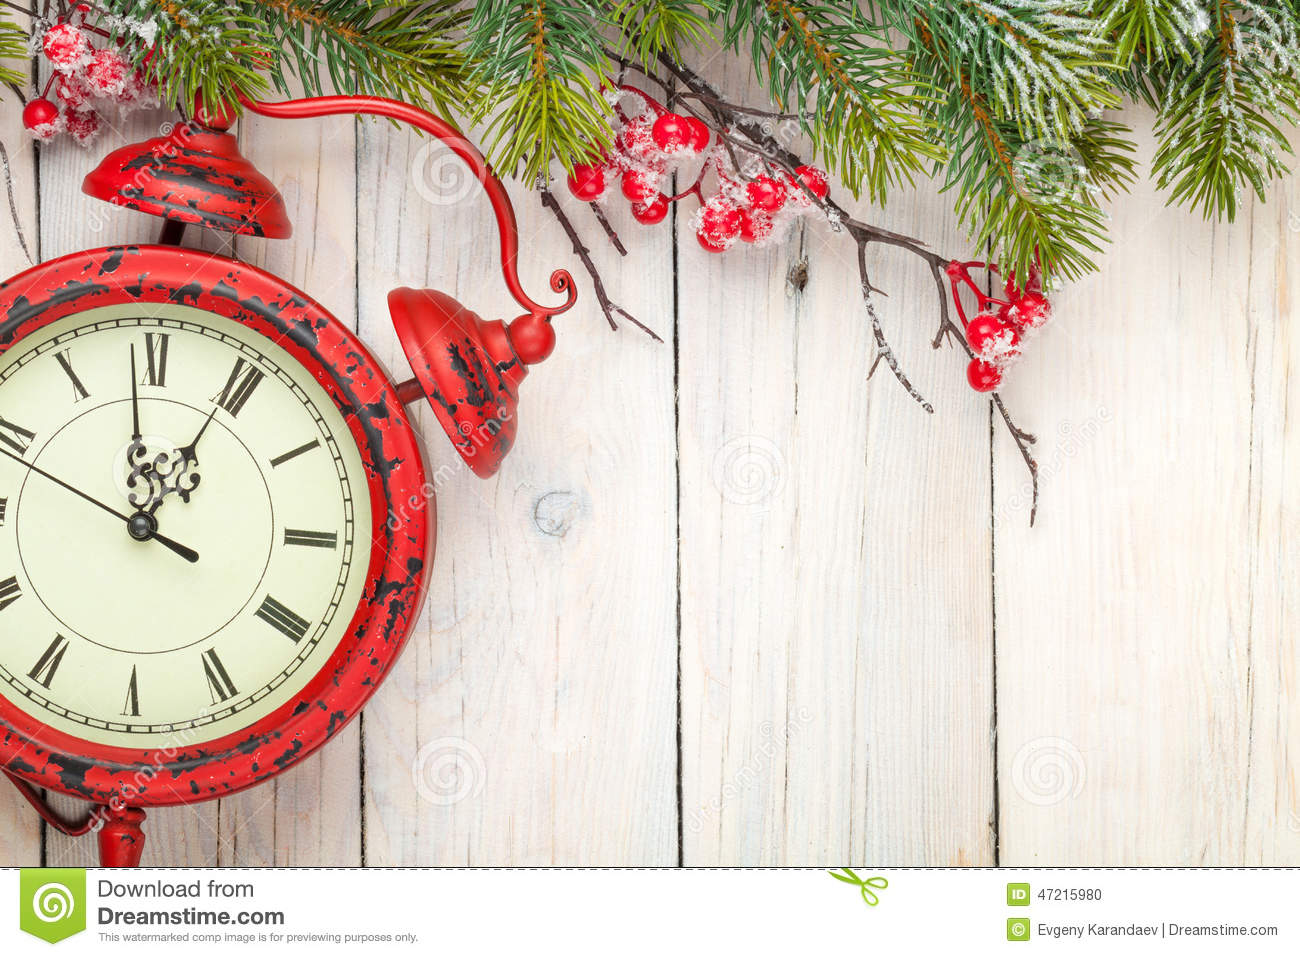 Christmas wooden background with fir tree and antique alarm clock